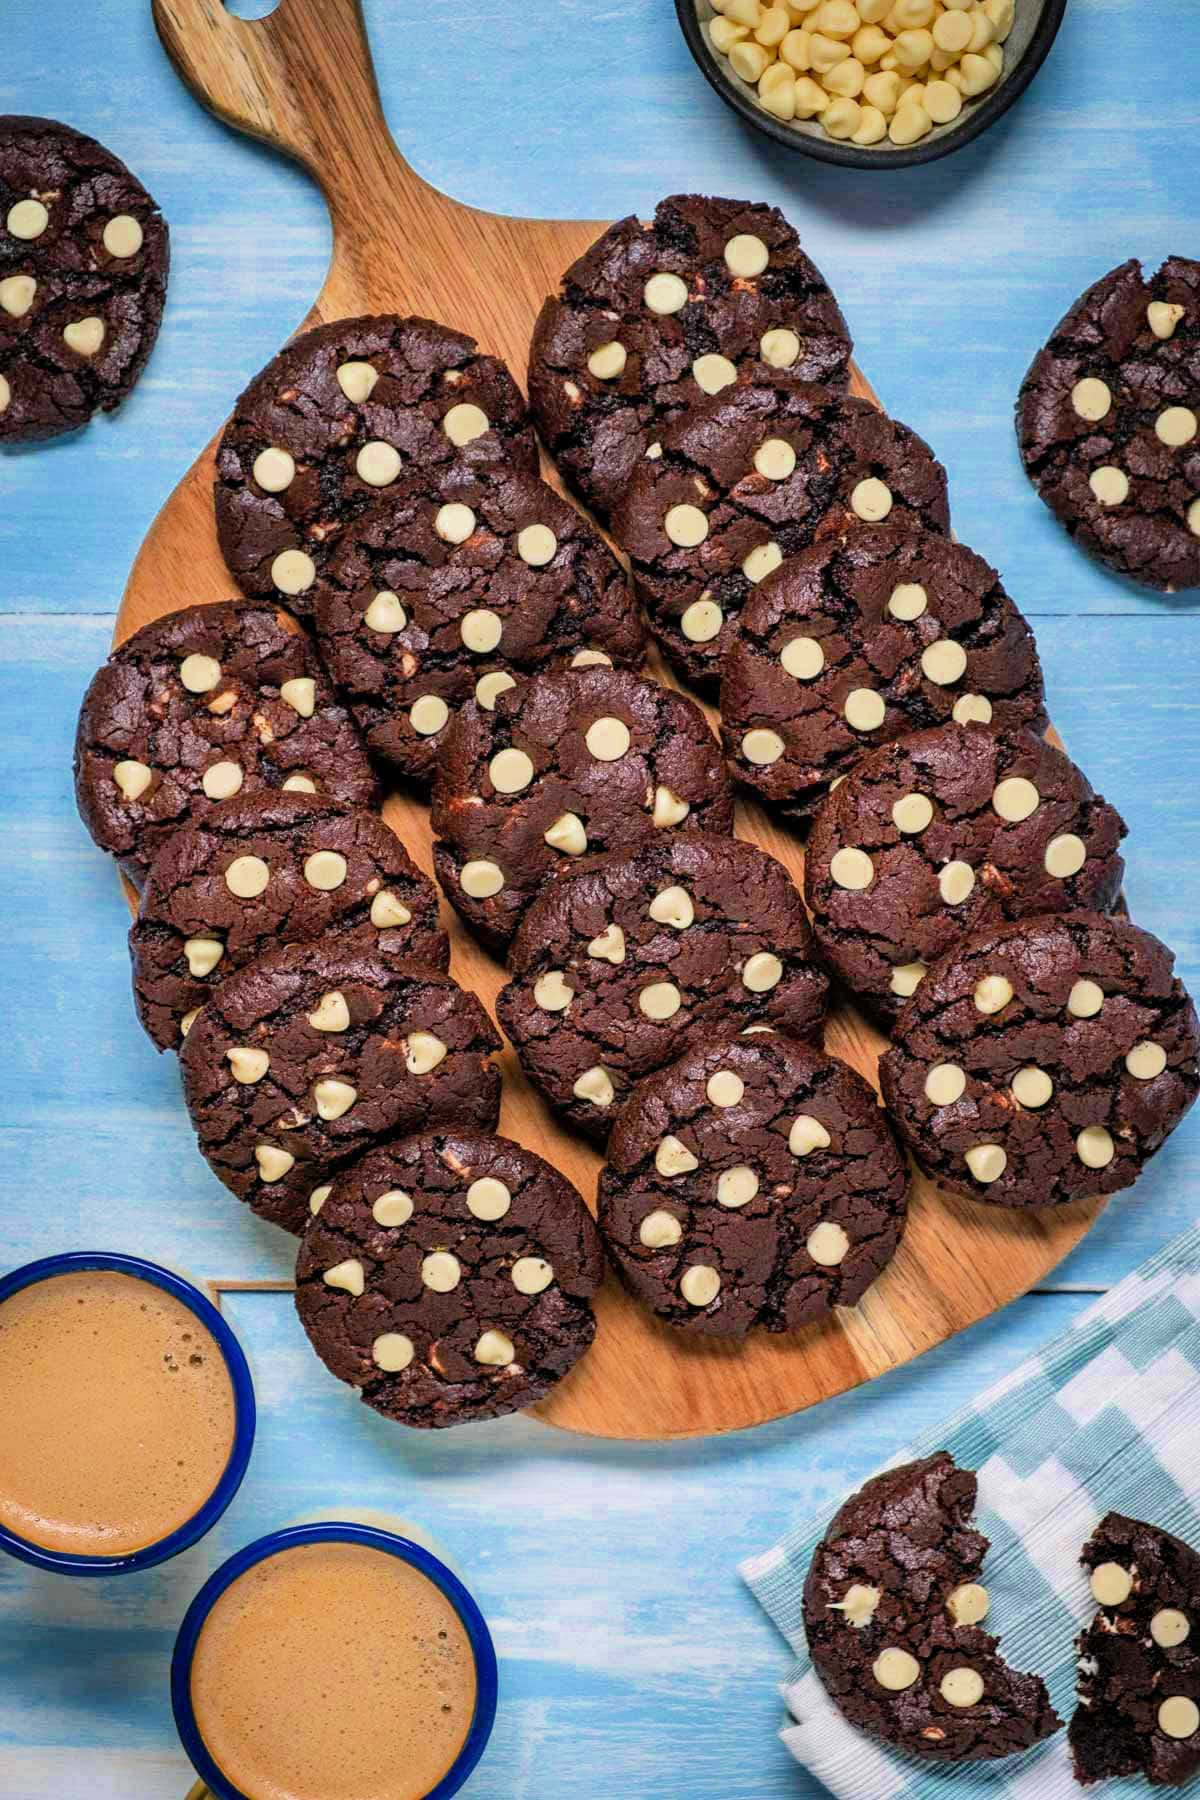 Inside out chocolate chip cookies lined up on a wooden board.